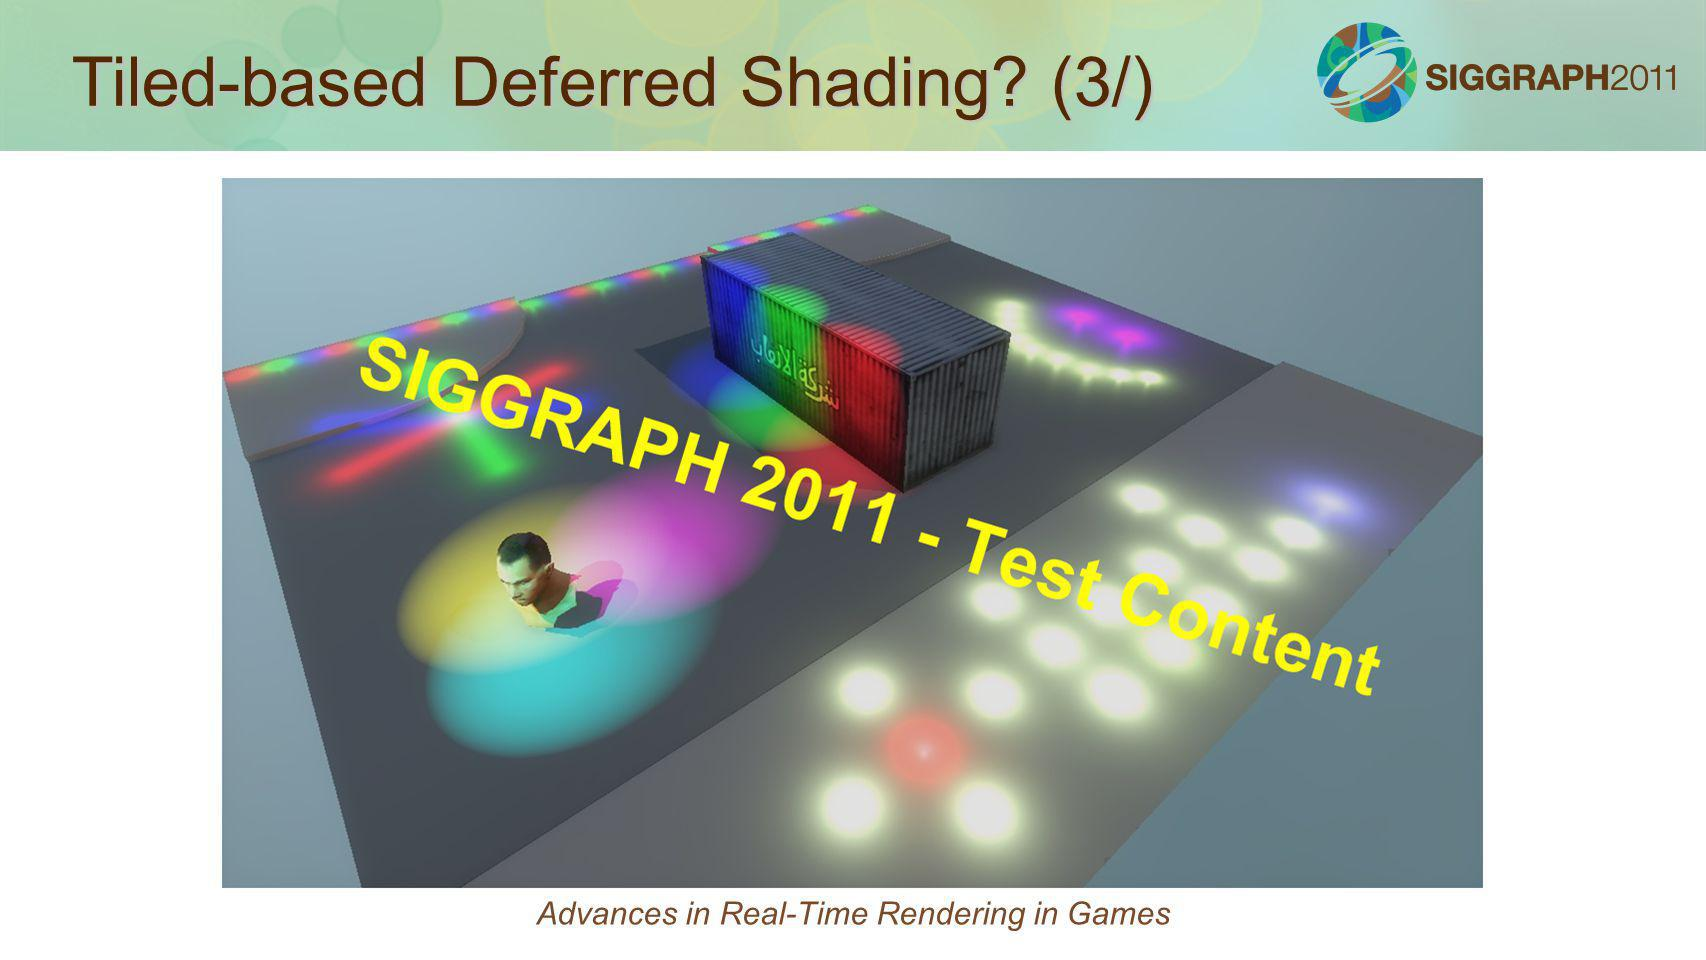 Tiled-based Deferred Shading? (3/) Advances in Real-Time Rendering in Games